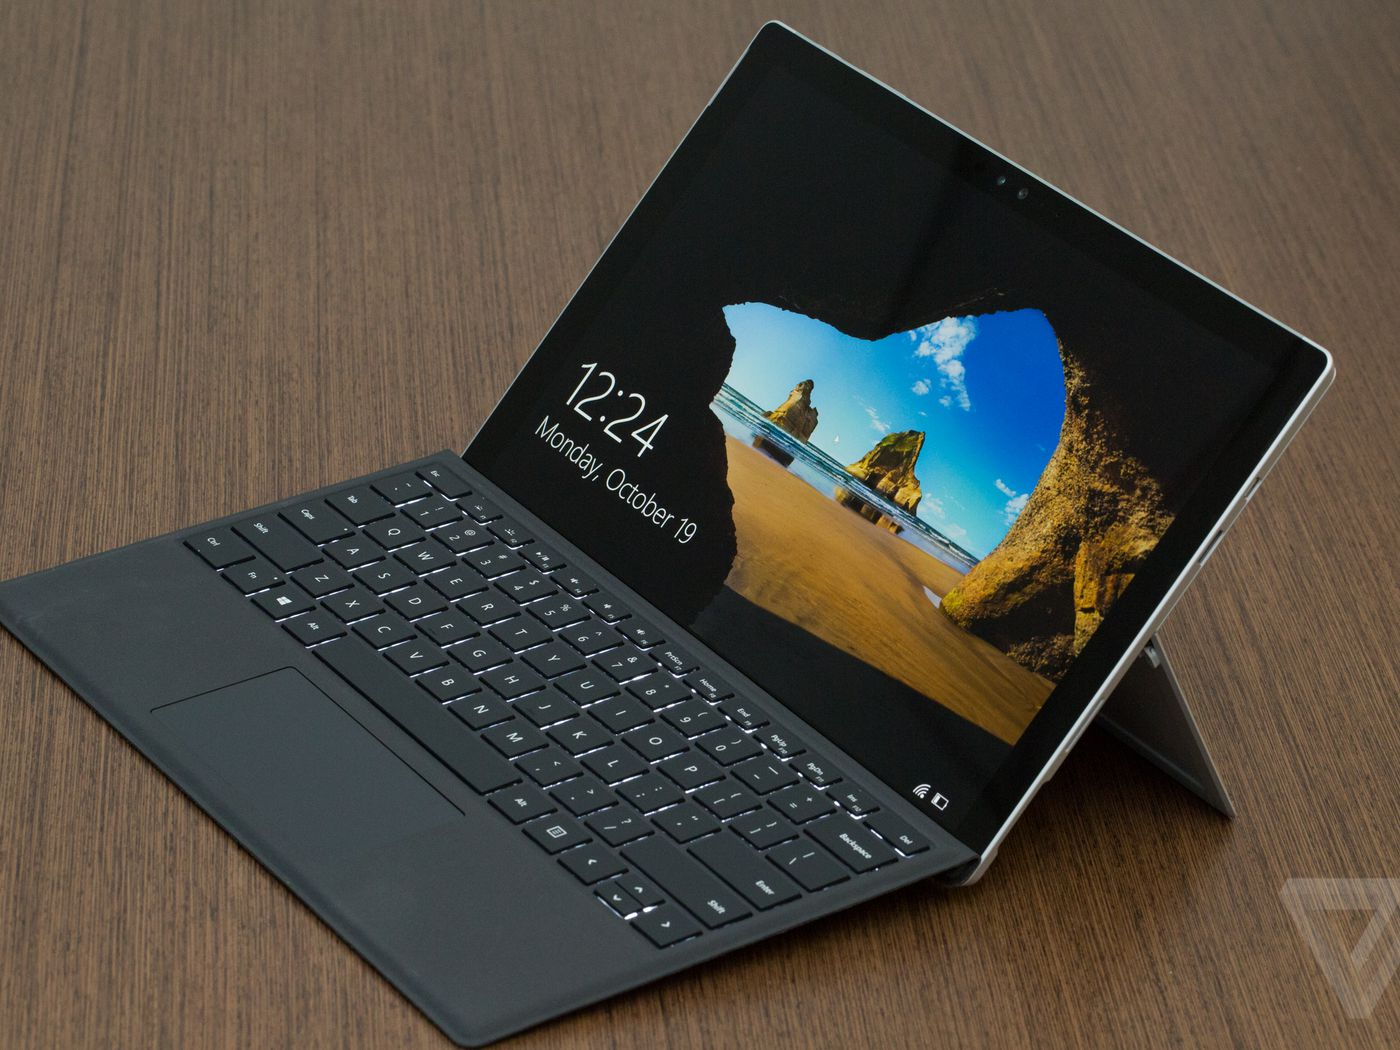 Surface Pro 4 owners are putting their tablets in freezers